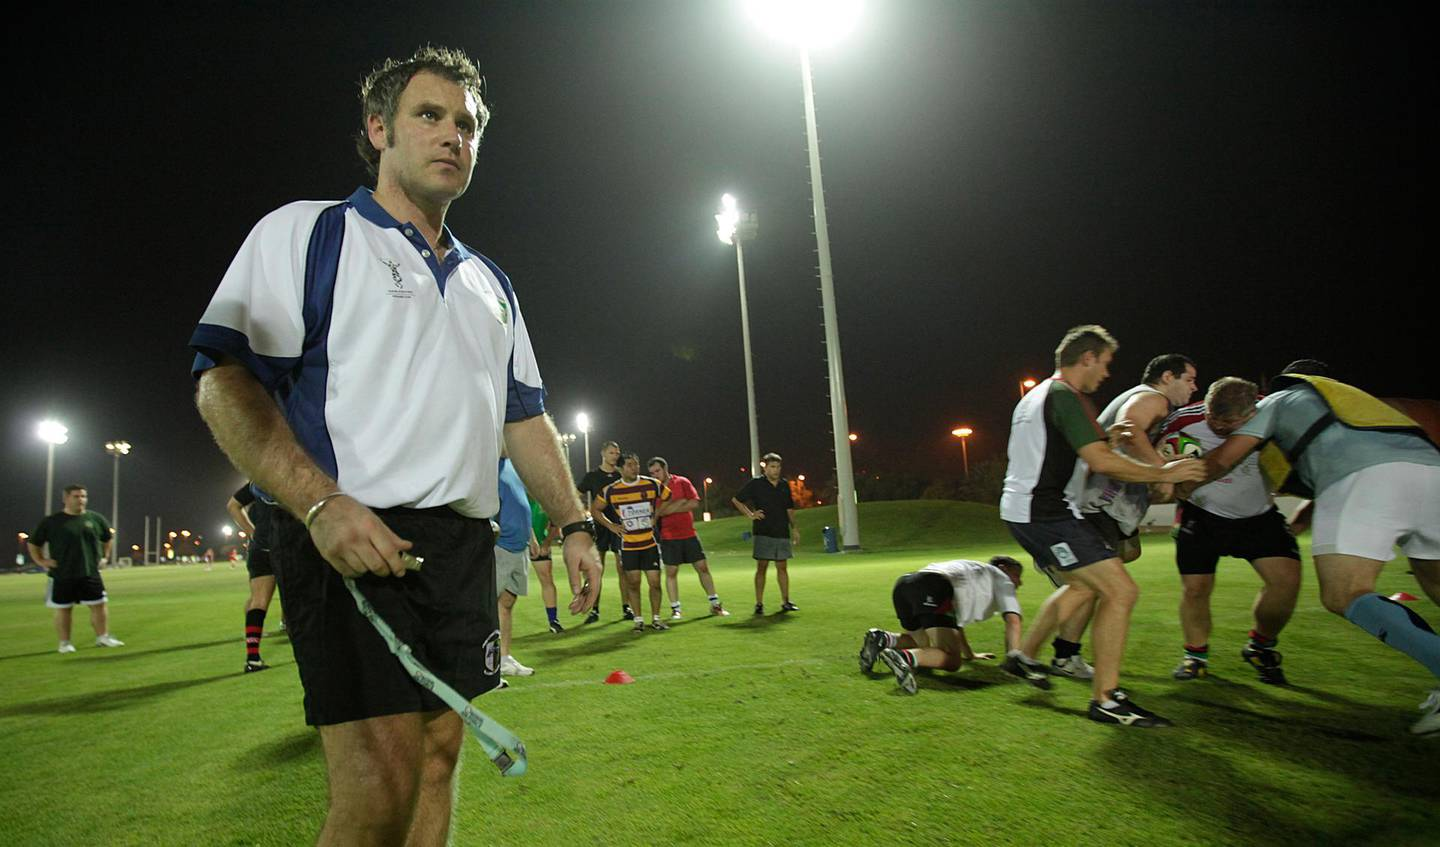 Sept 6, 2011 (Abu Dhabi) Chris Davies the new director of rugby for Abu Dhabi Harlequins leads a practice session at the rugby fields at Zayed Sports City in Abu Dhabi September 6, 2011. (Sammy Dallal / The National) *** Local Caption ***  sd-090711-rugby-11.jpg